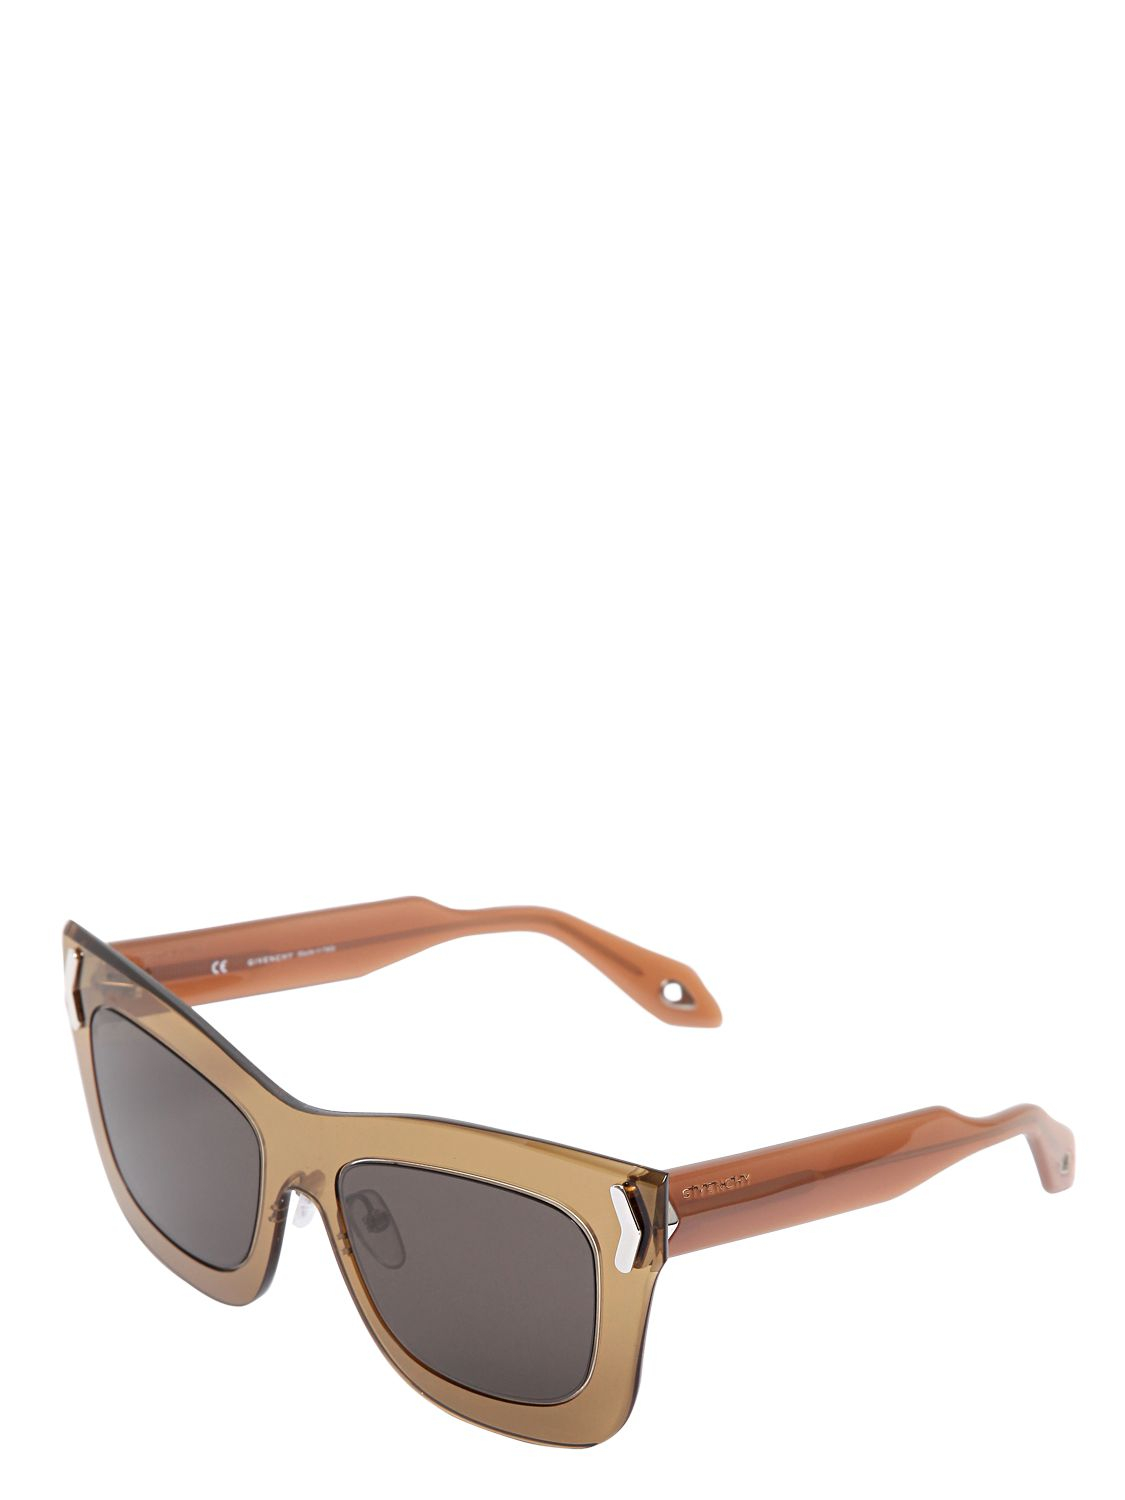 Acetate sunglasses Givenchy kN239